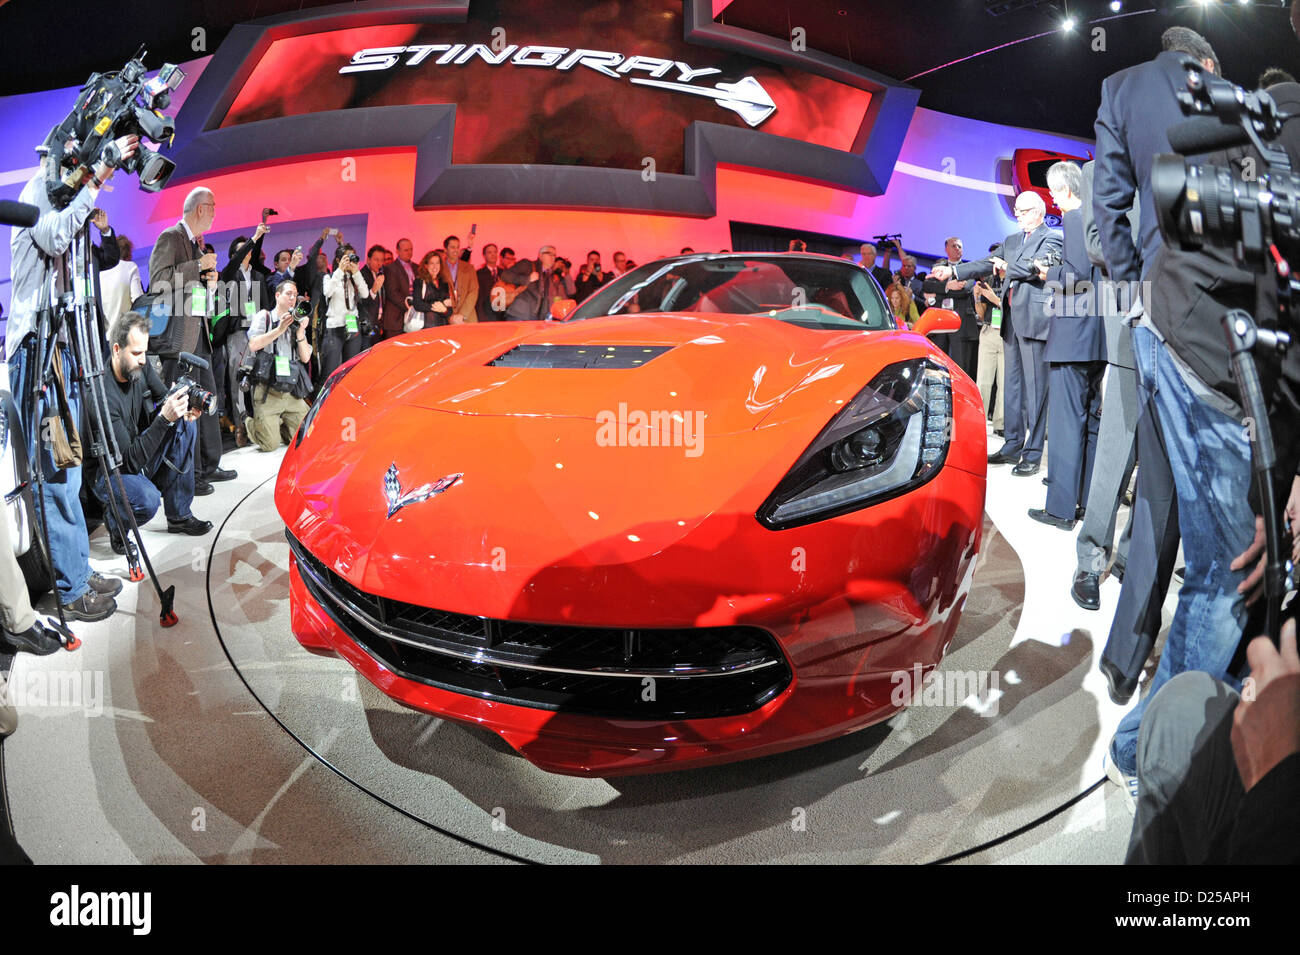 The new Chevrolet Corvette Stingray is unveiled on the first press day of the North American International Auto - Stock Image